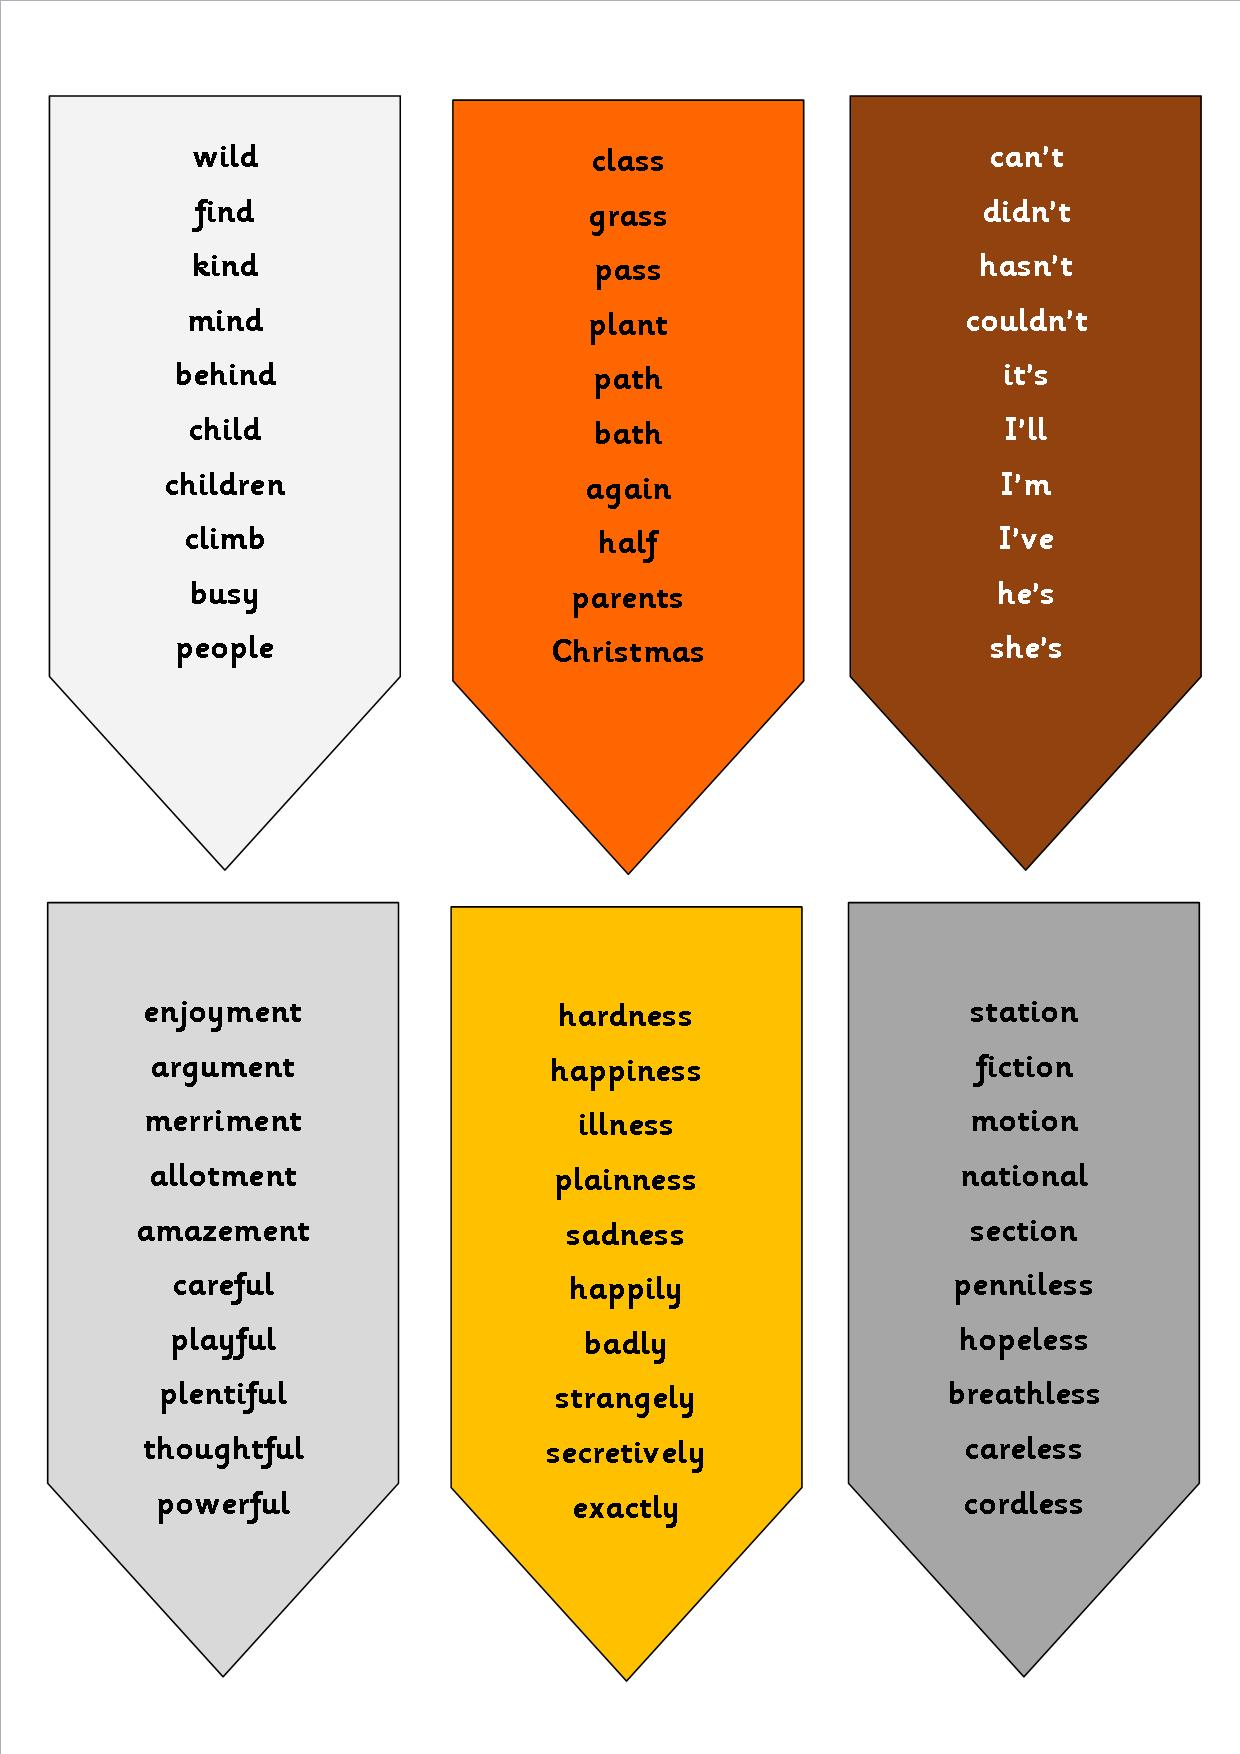 Children need to show that they can consistently spell these words correctly, starting with the first band of words.